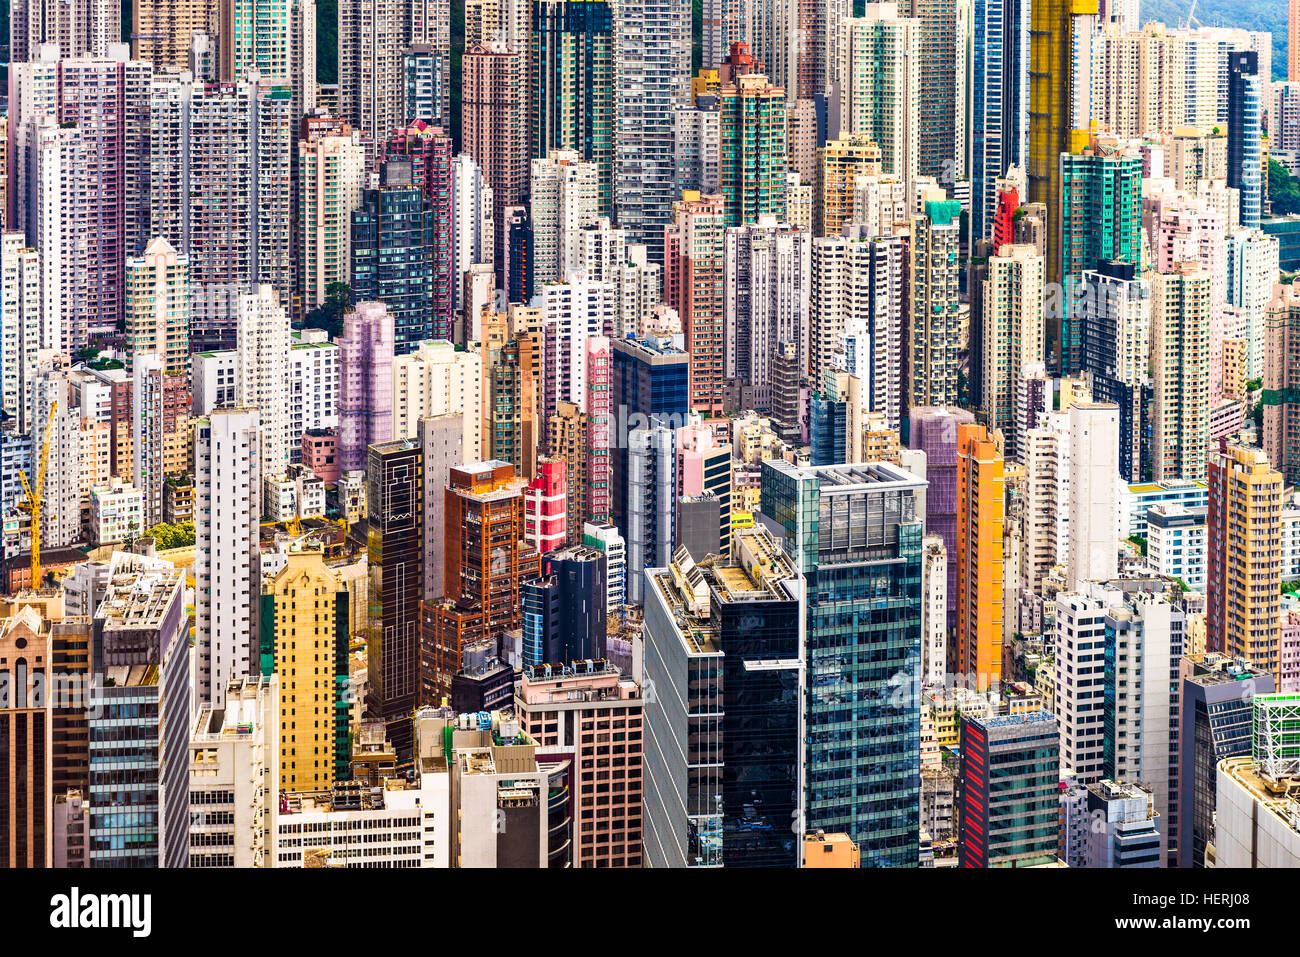 Hong Kong China dense urban buildings - Stock Image